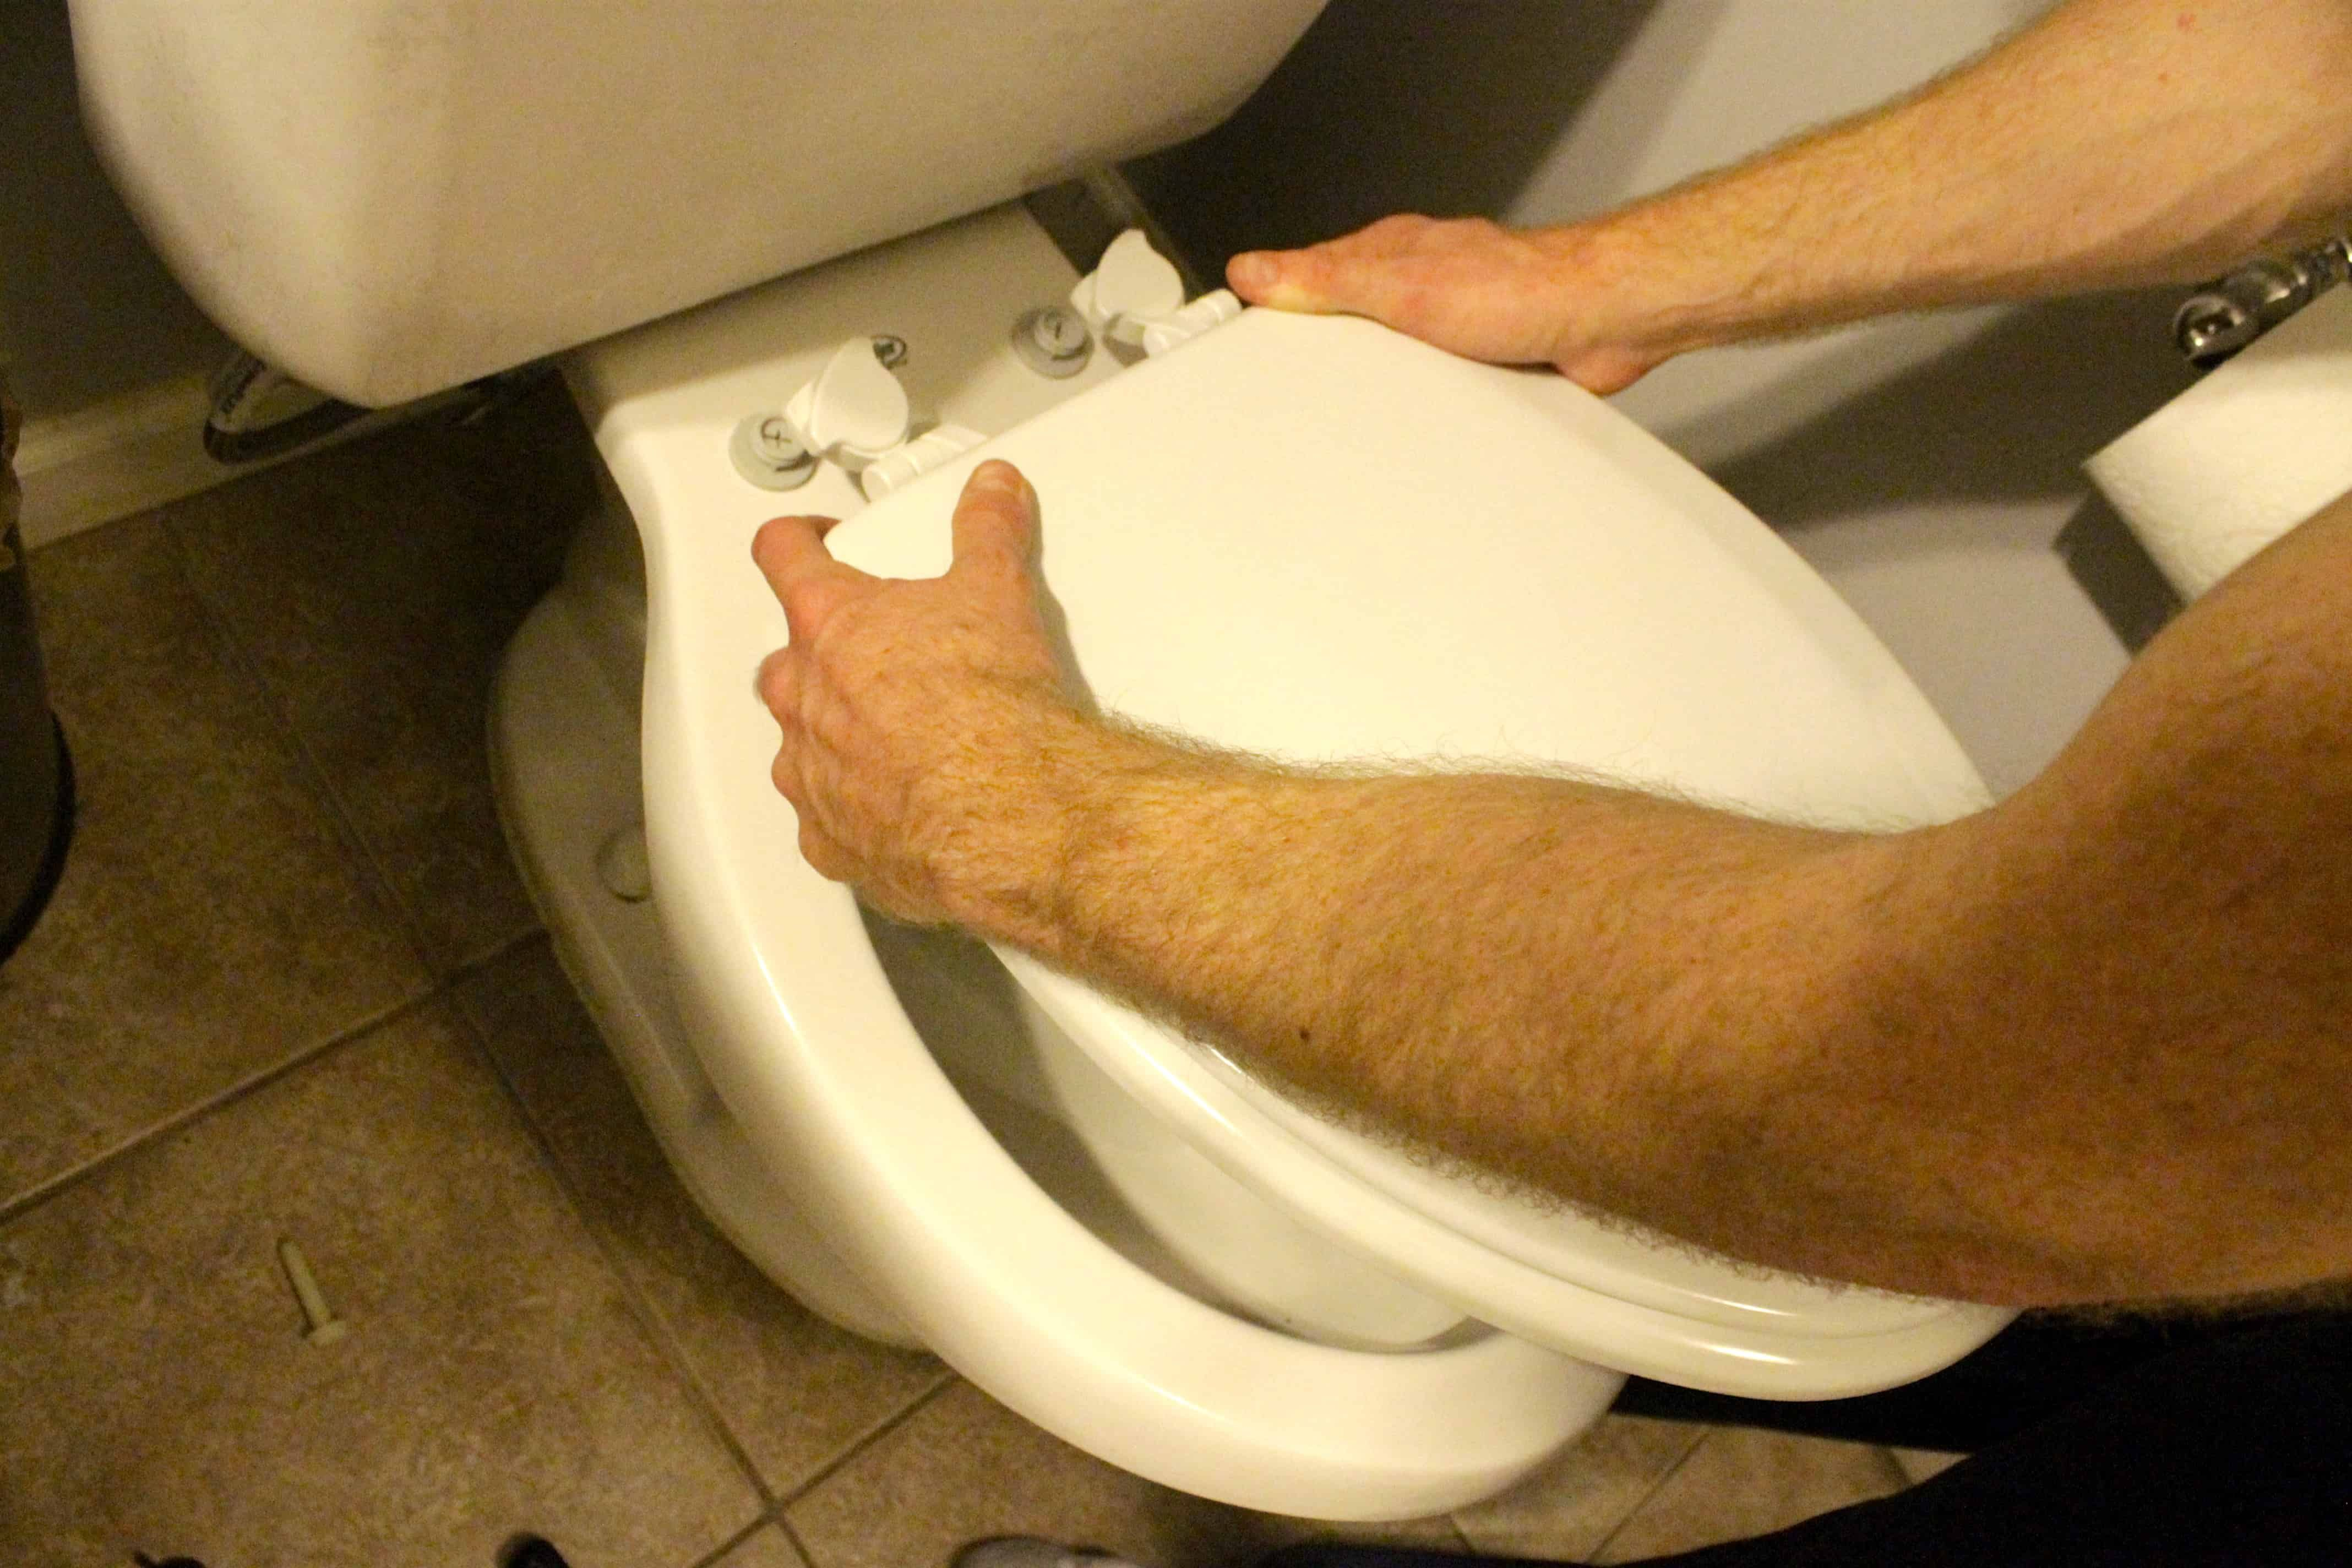 How To Change A Toilet Seat In 2020 New Toilet Toilet Seat Toilet